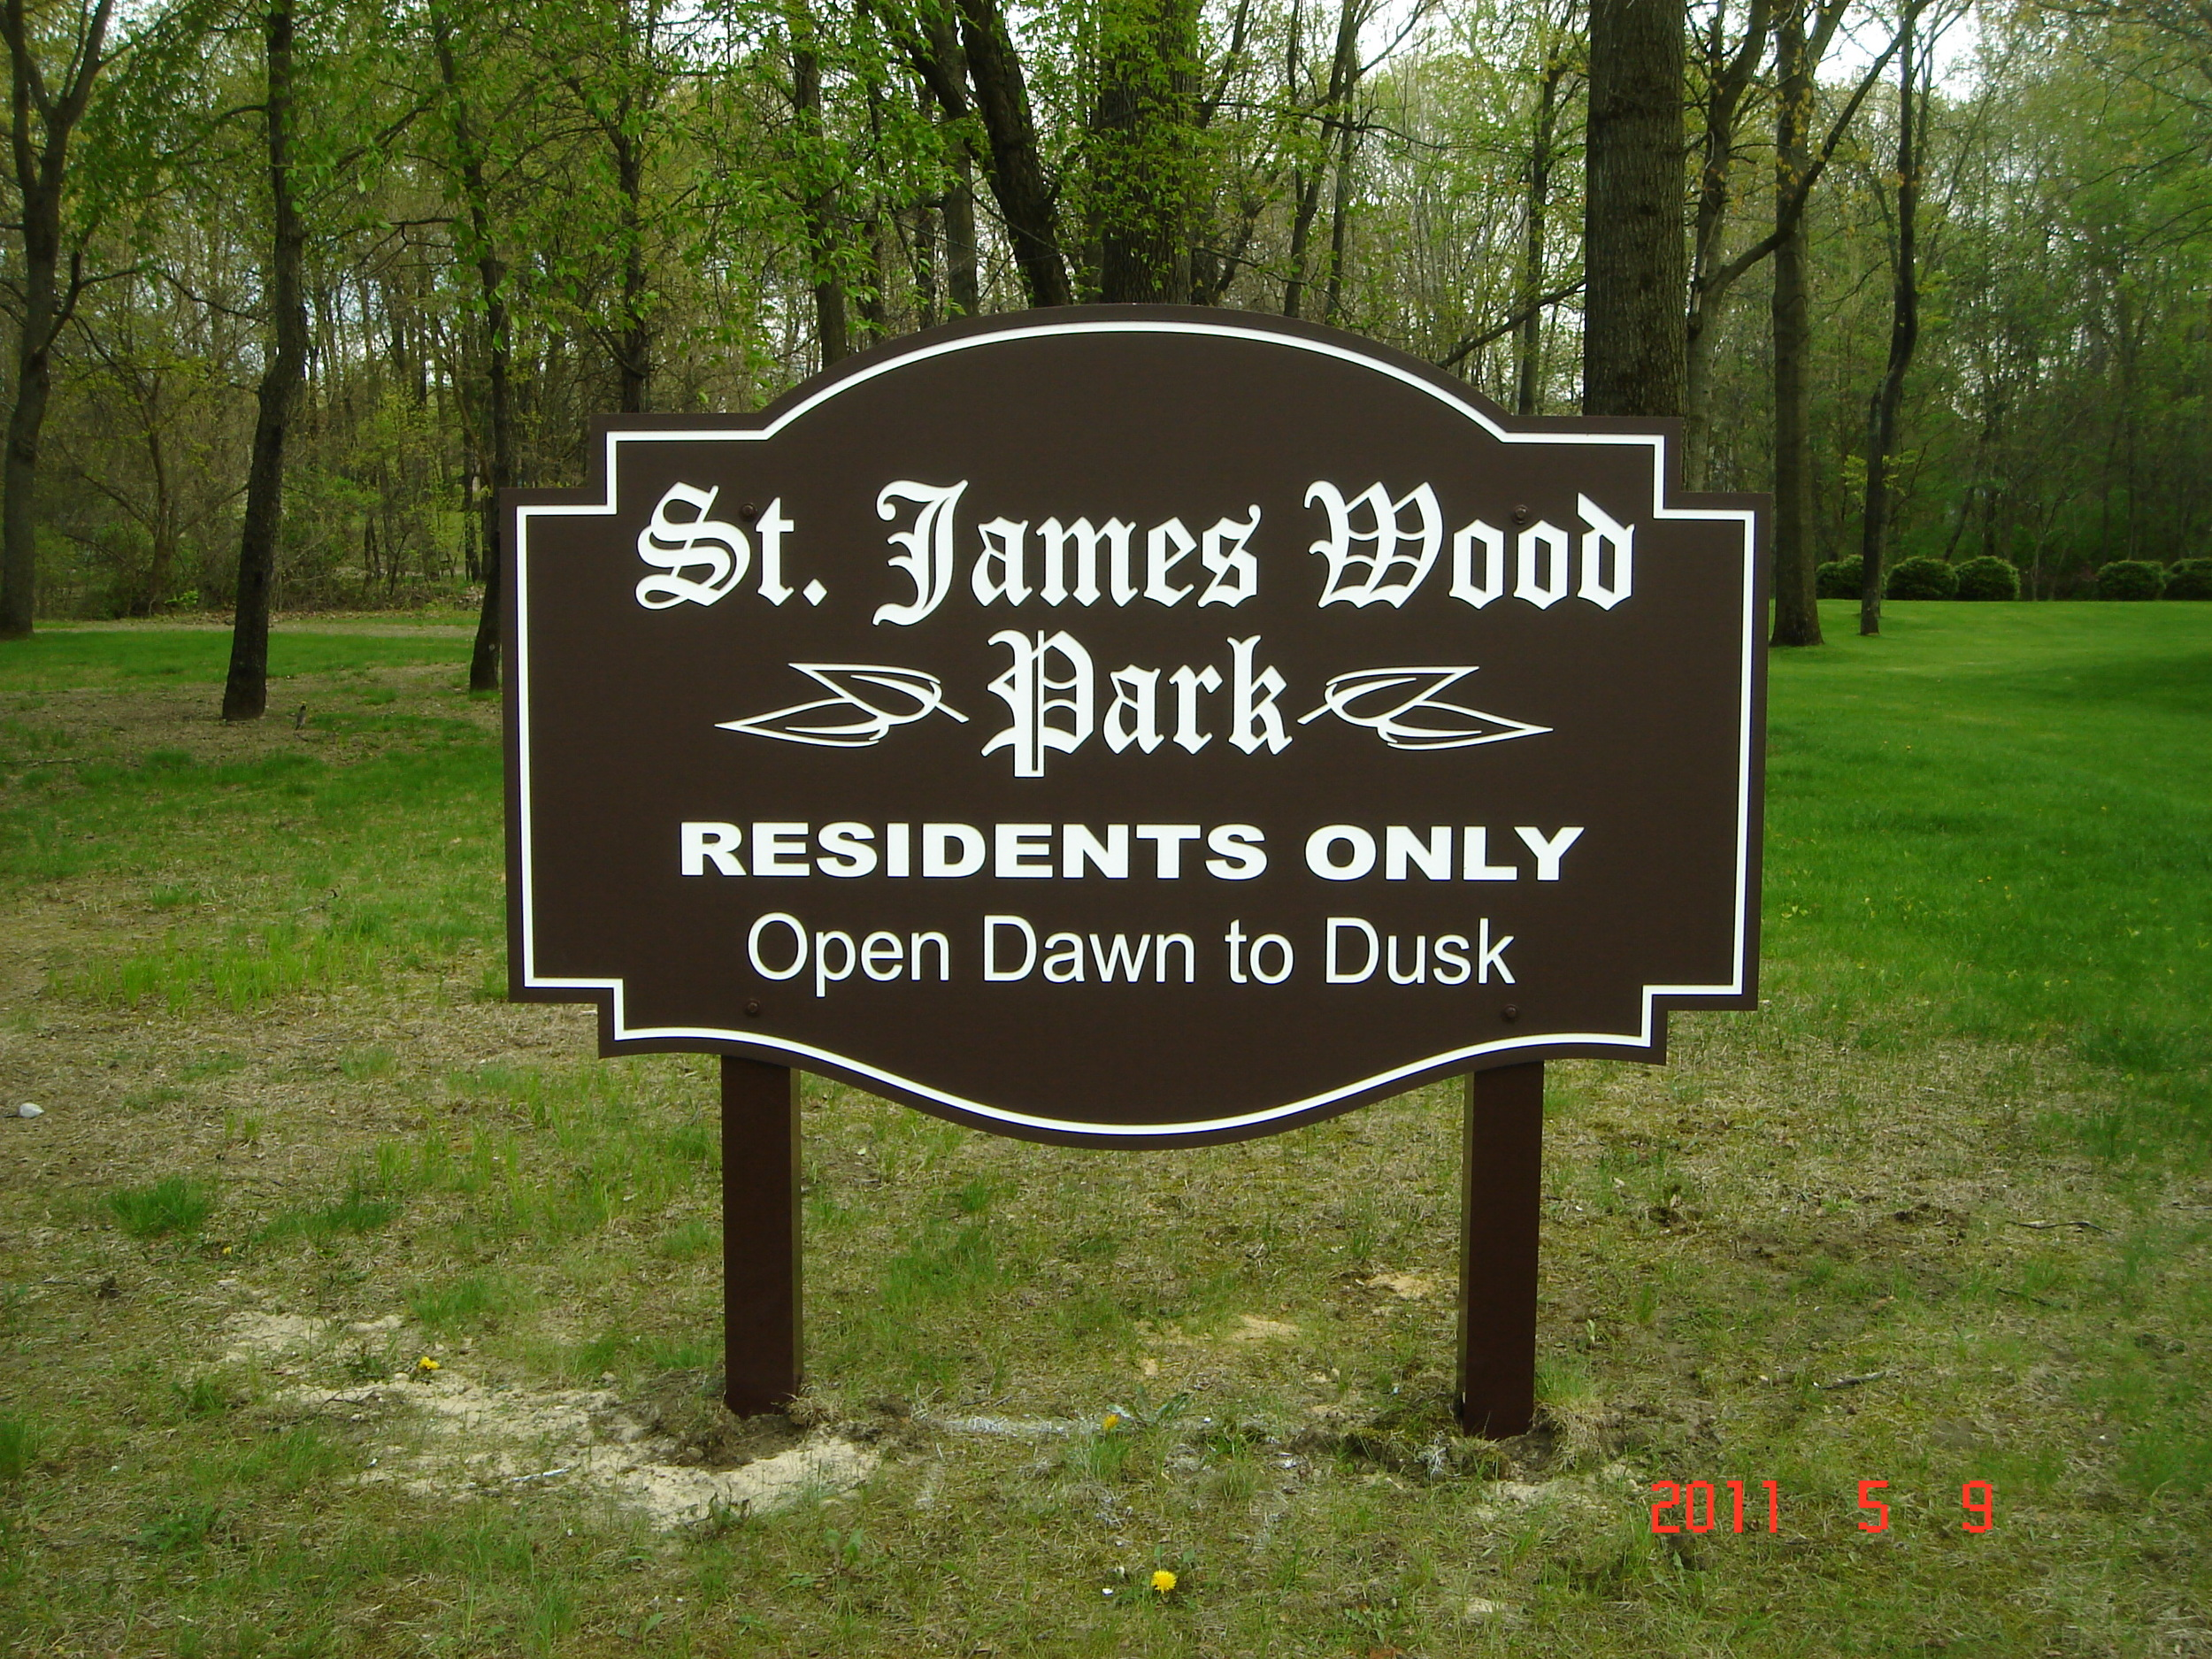 St. James Wood Park